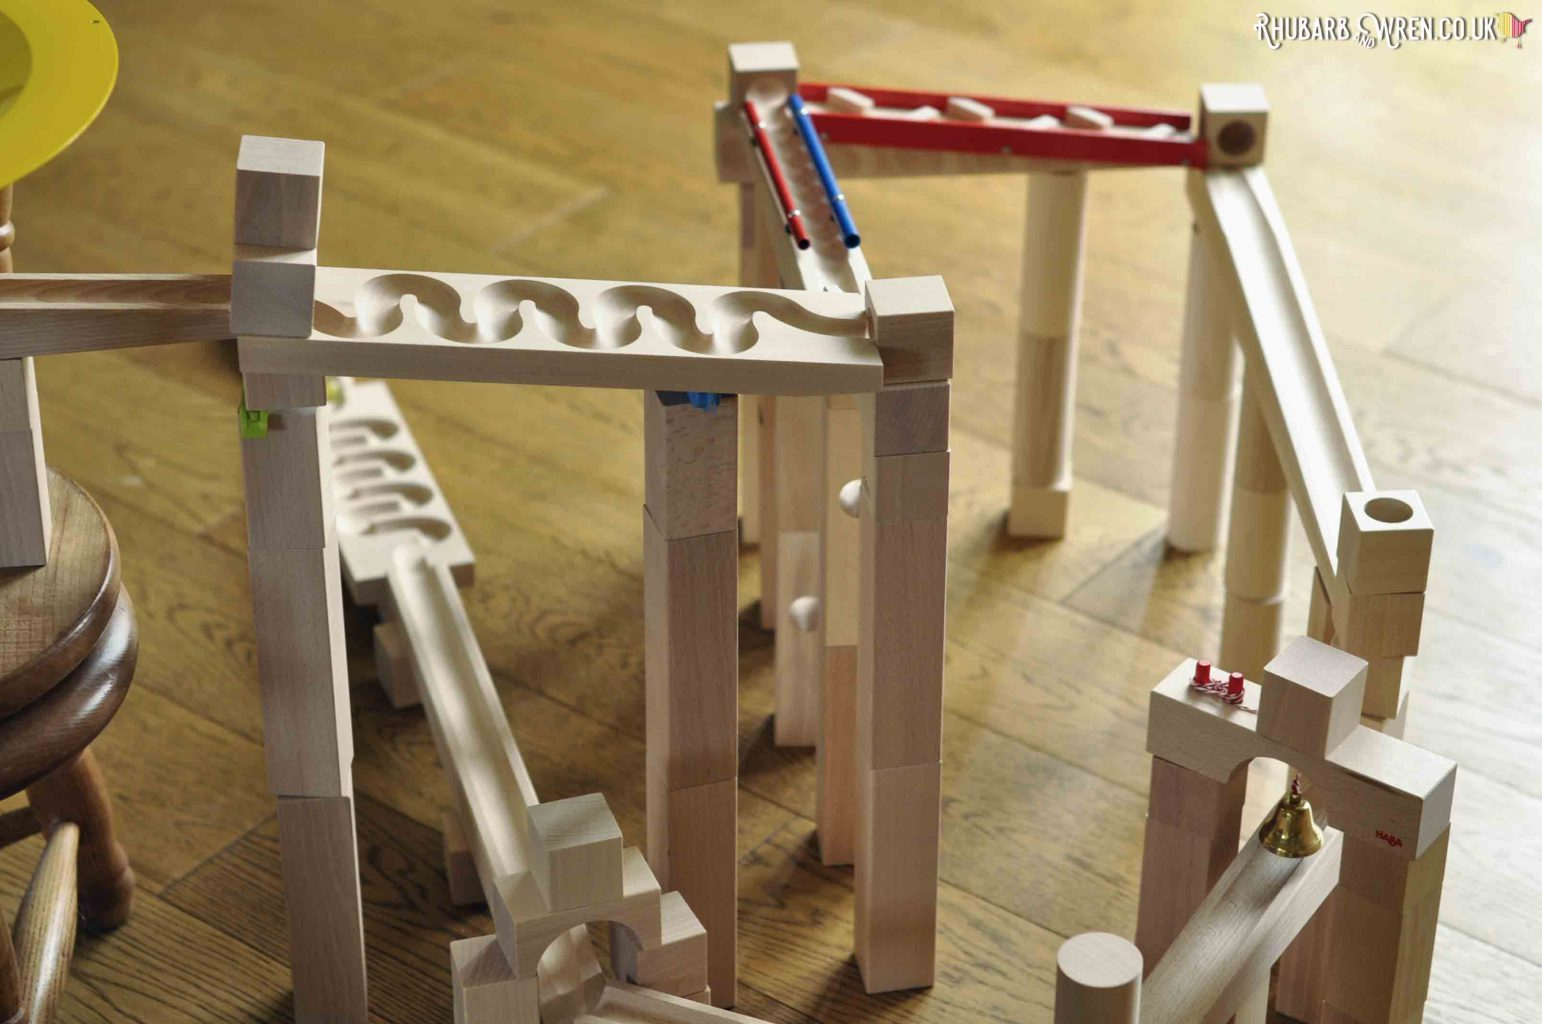 Complicated wooden marble run set up